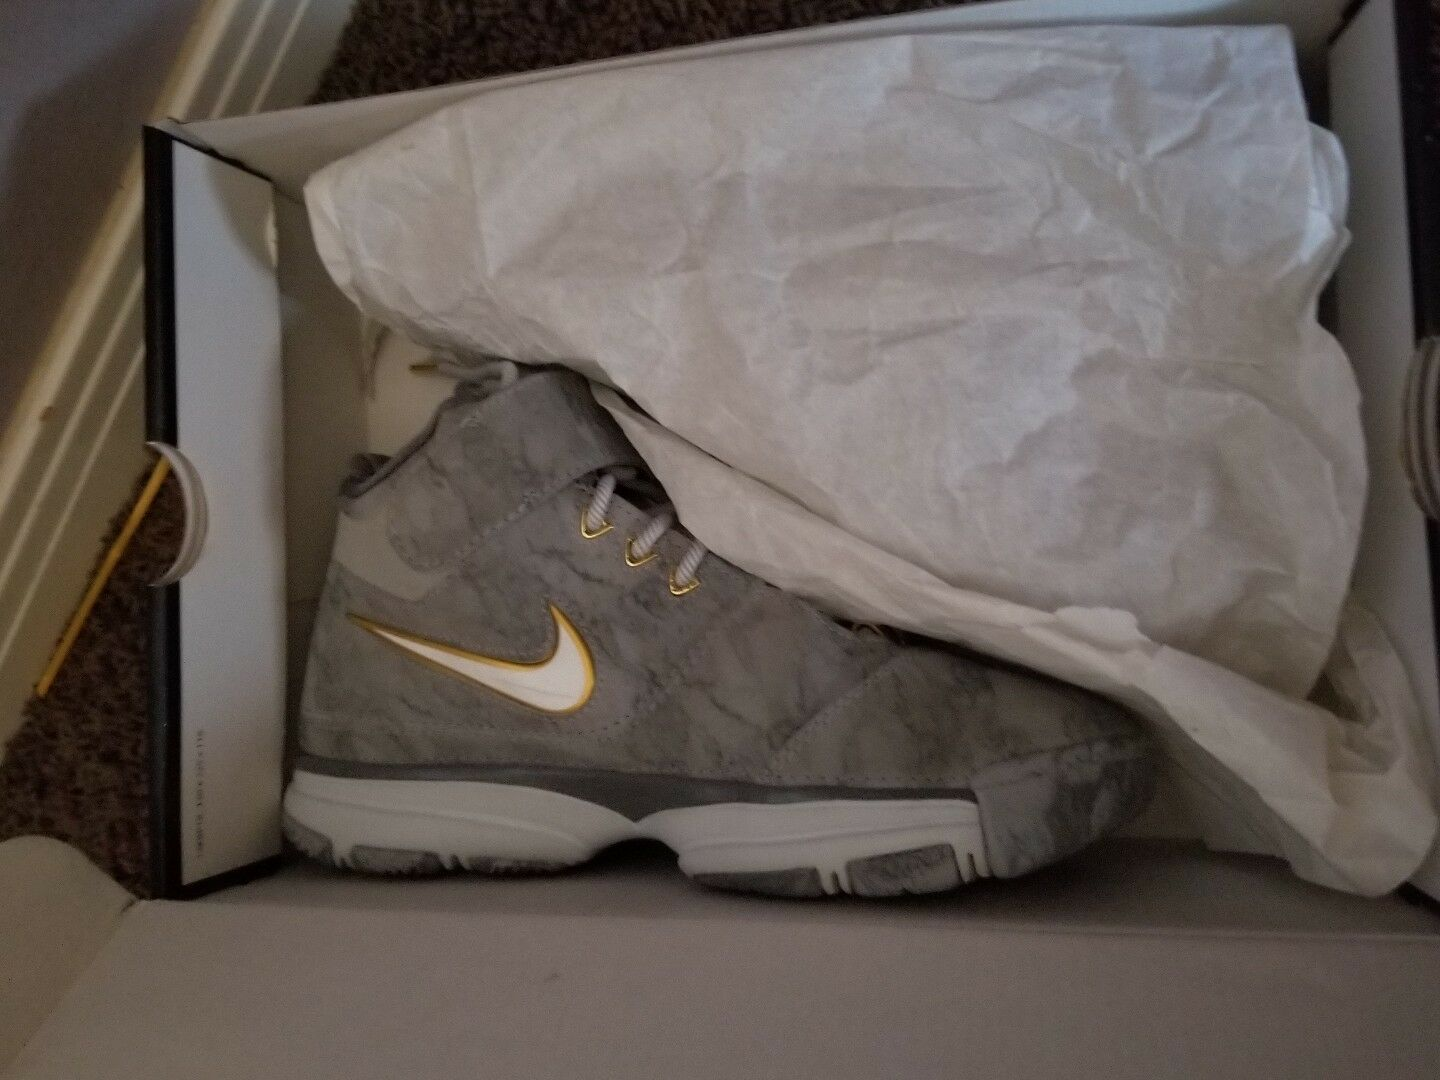 Kobe prelude 2 size 6.5 y. Vnds. 9.5 10 condition.